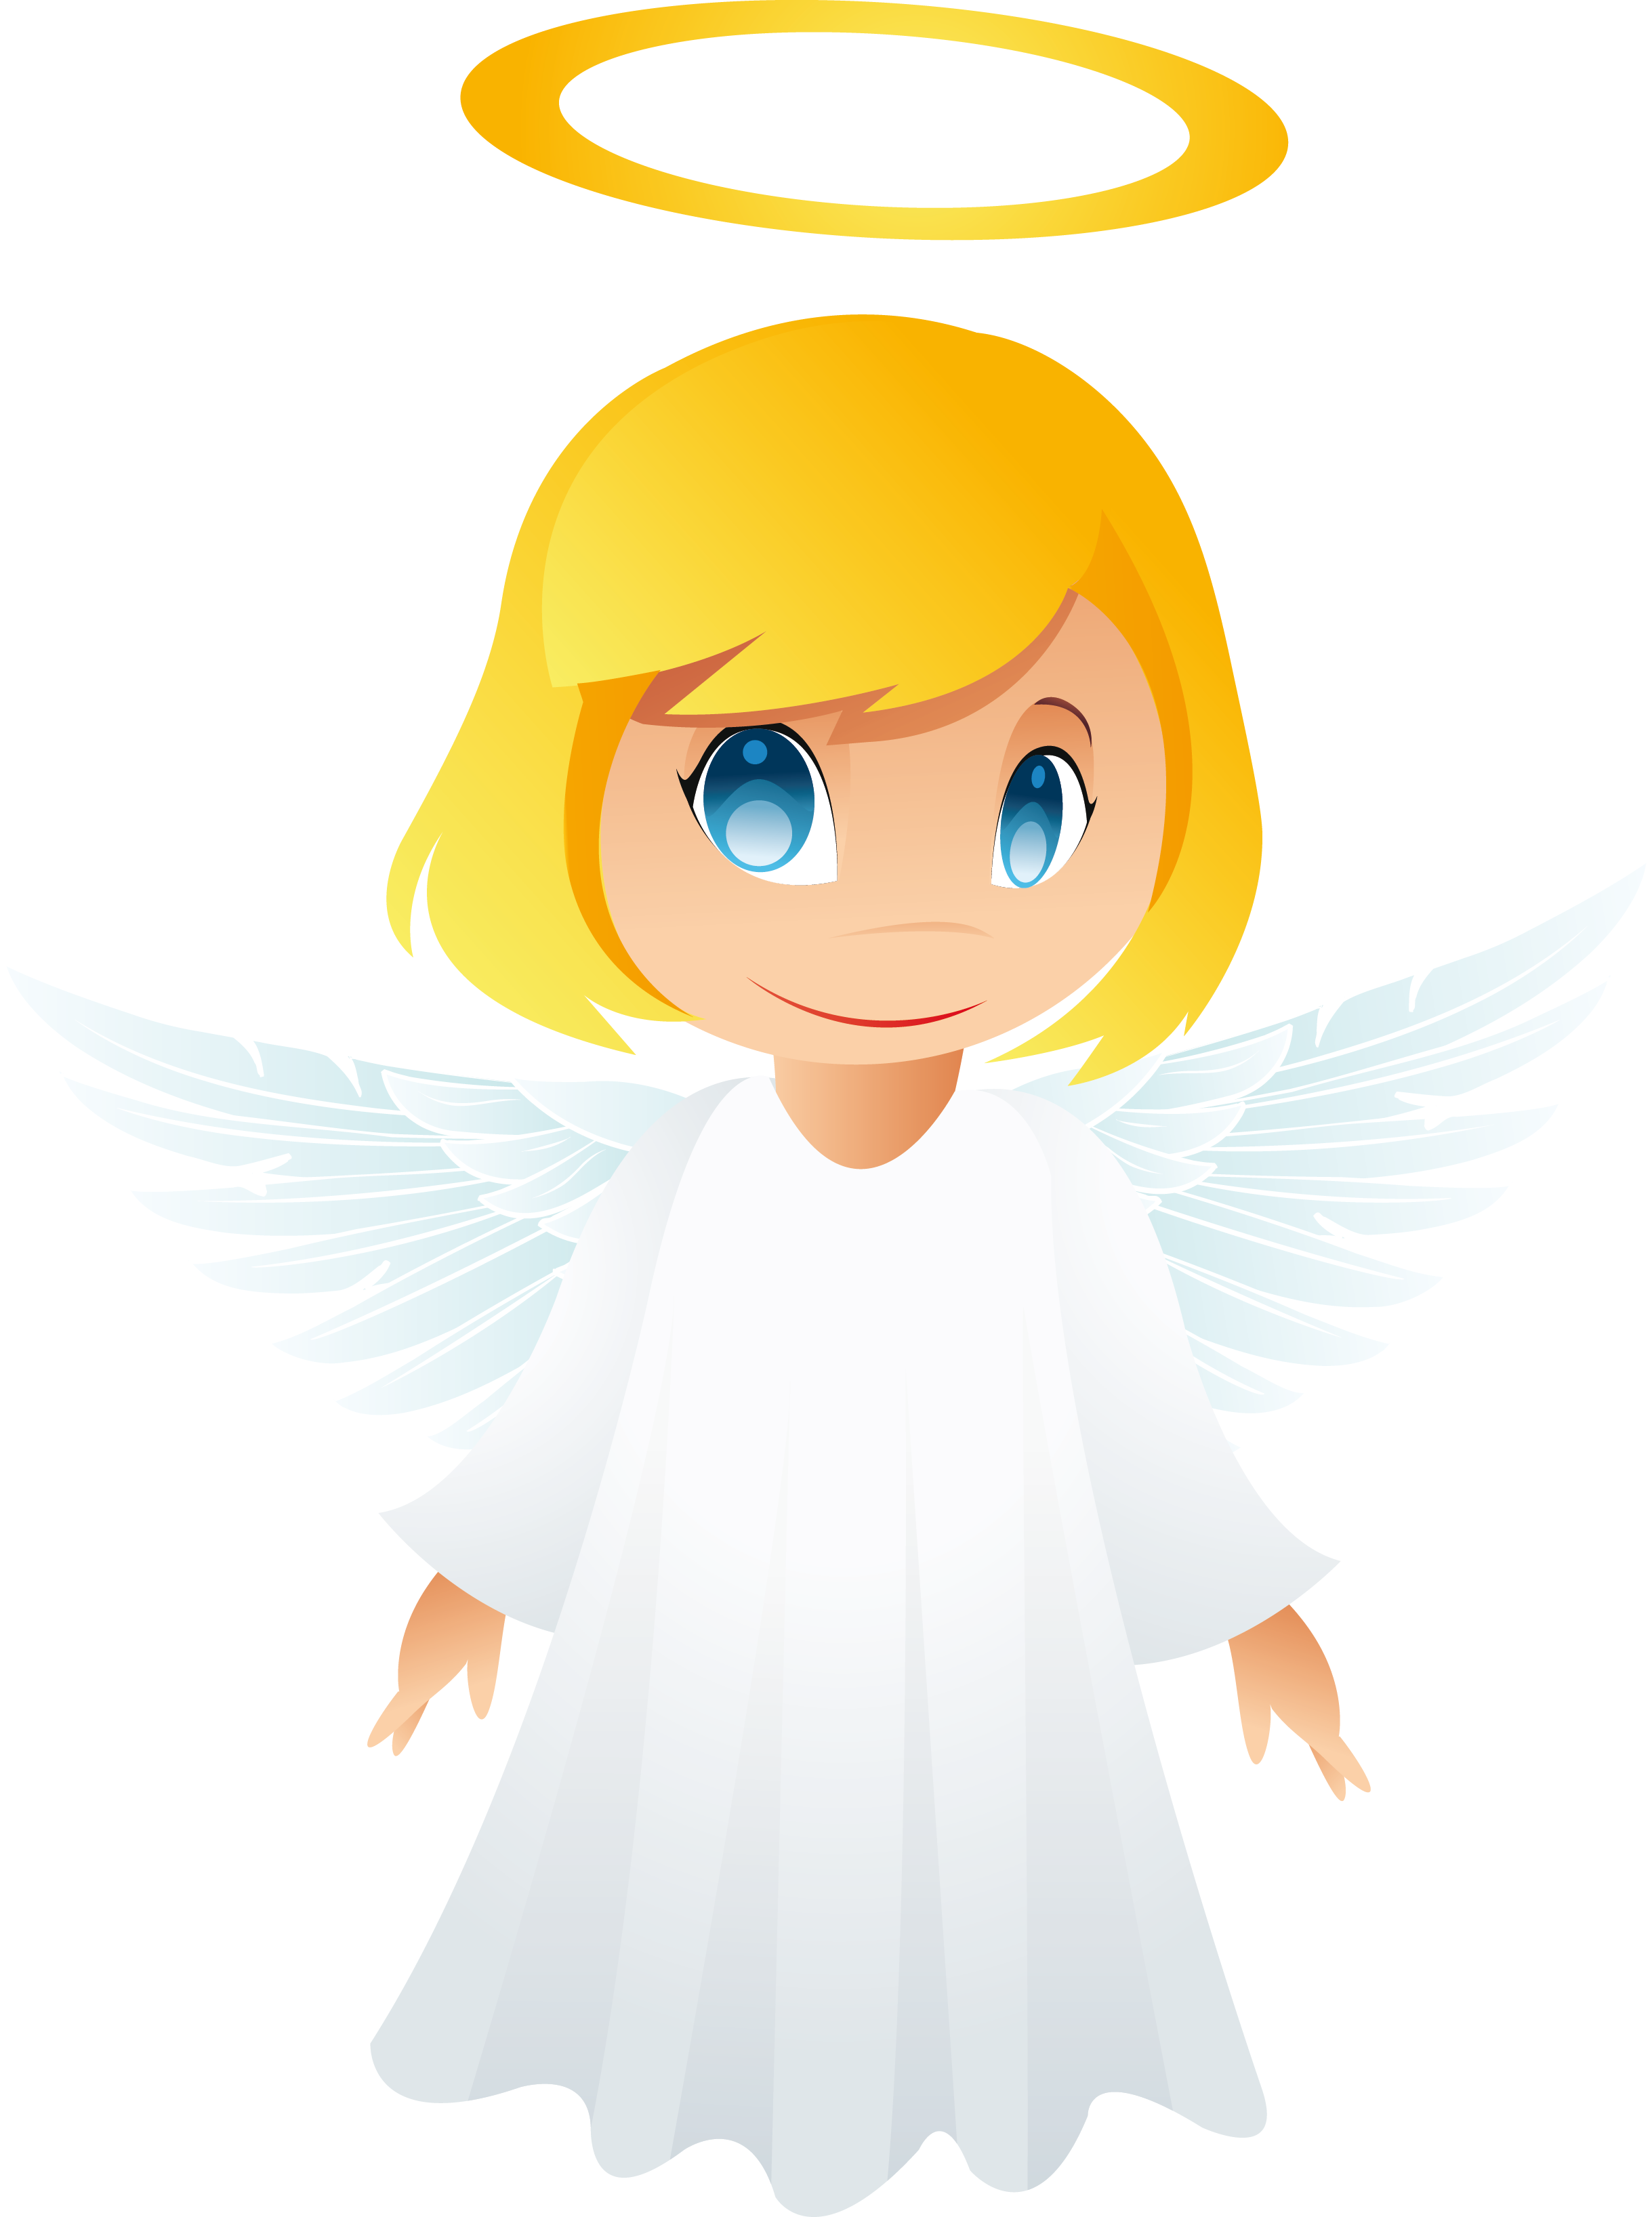 angel clipart free graphics of cherubs and angels the cliparts rh pinterest com cherub clipart free cherub clipart free